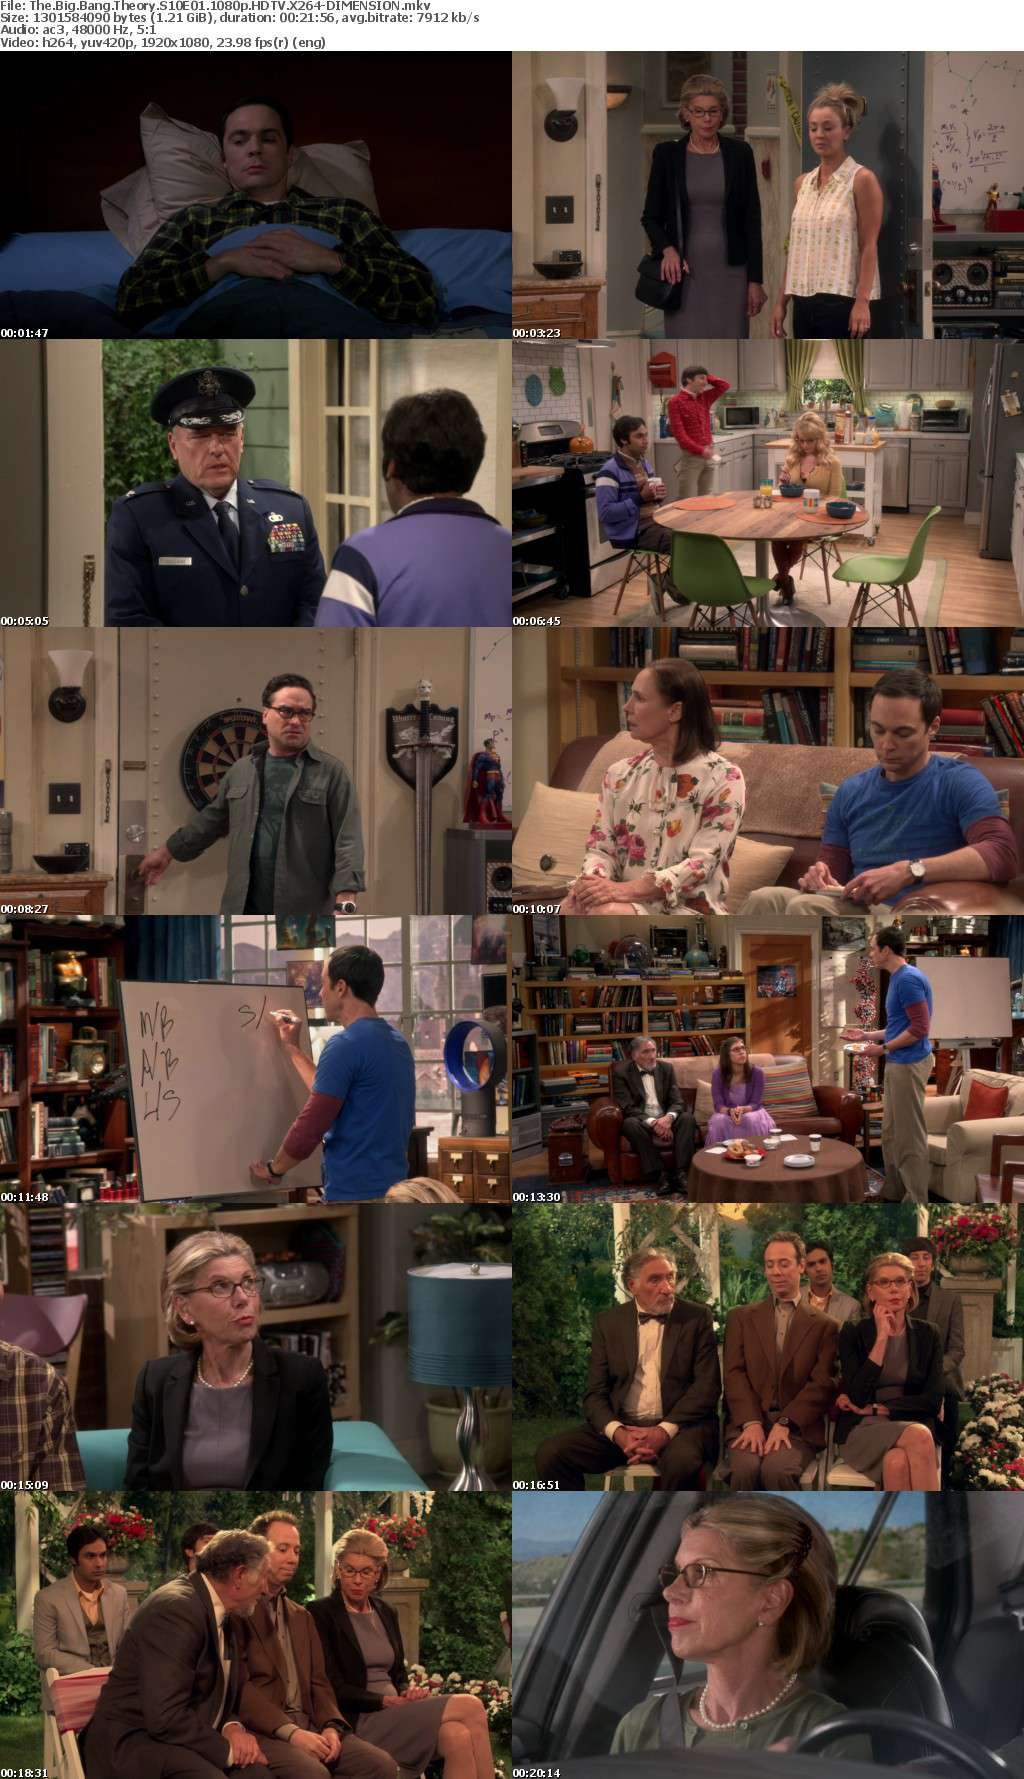 The Big Bang Theory S10E01 1080p HDTV X264-DIMENSION